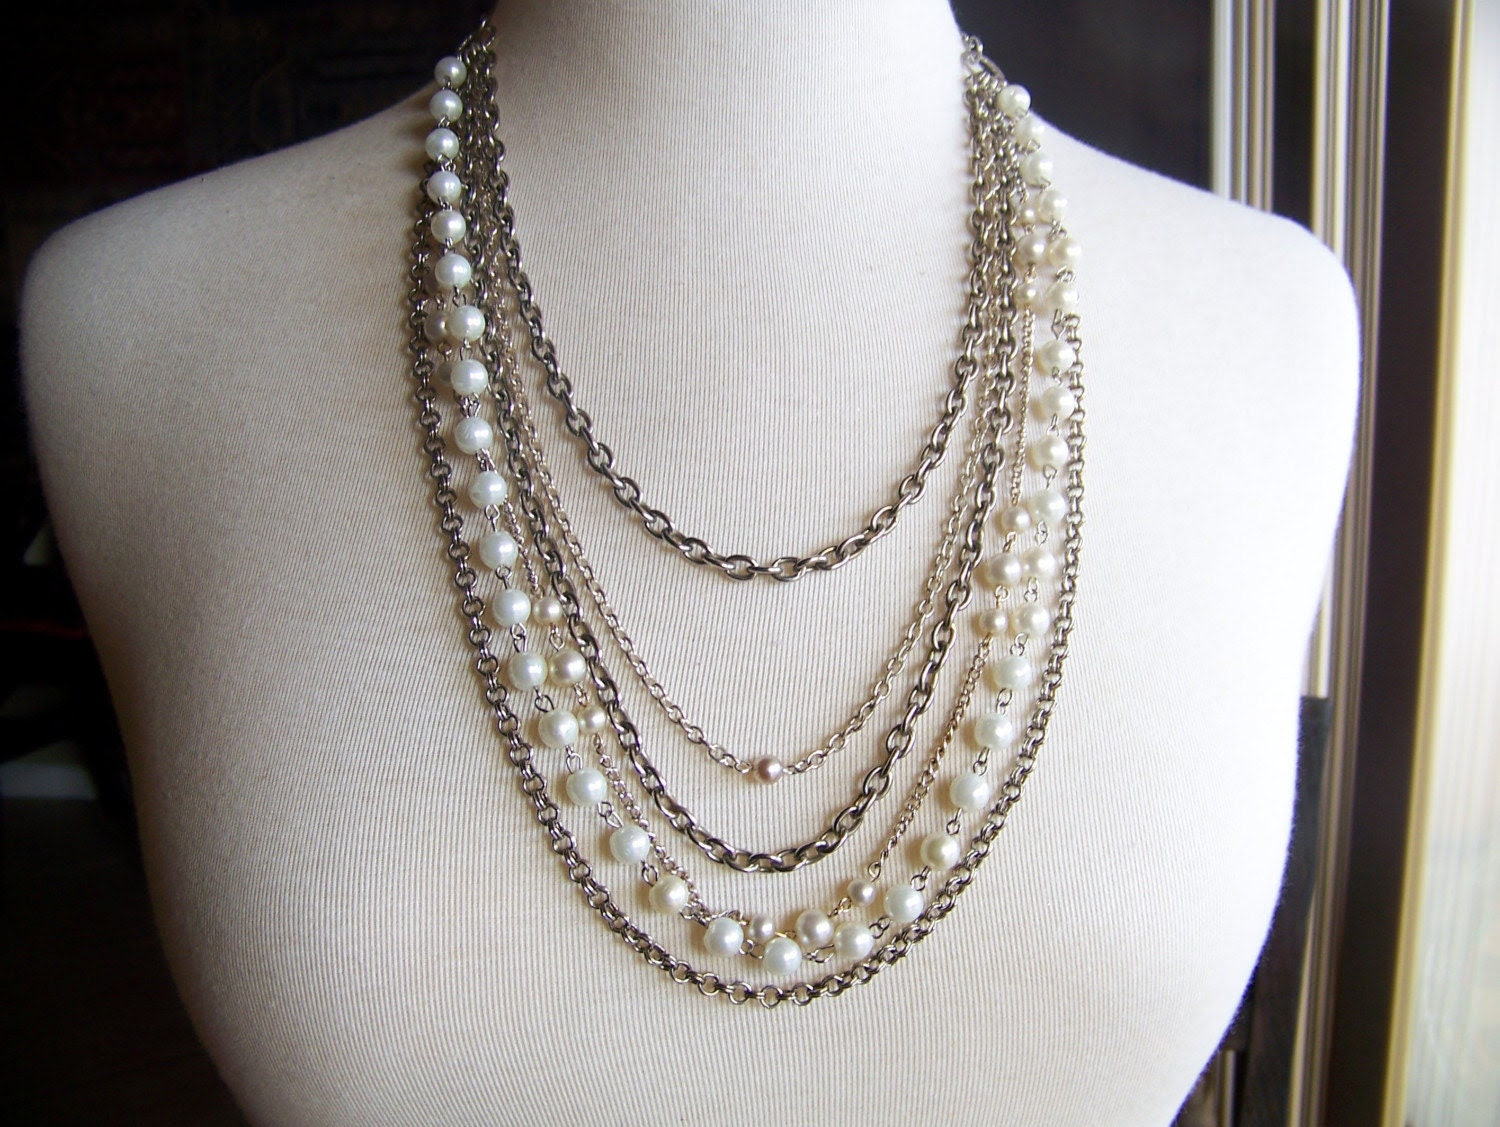 last dance - silver chains and pearls - a necklace of vintage and recycled jewelry